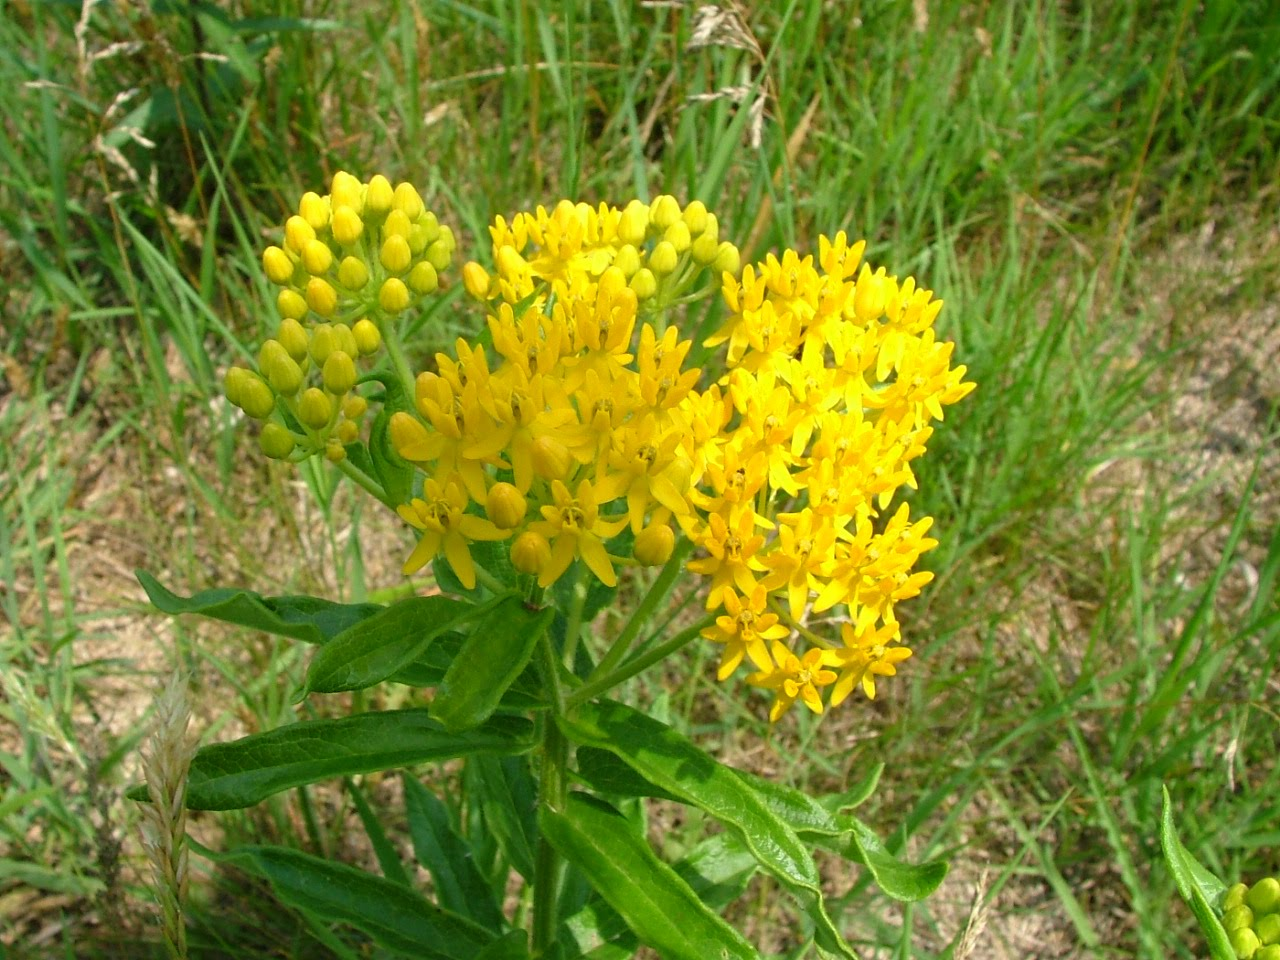 Weed with yellow flowers 34 cool hd wallpaper hdflowerwallpaper weed with yellow flowers free wallpaper mightylinksfo